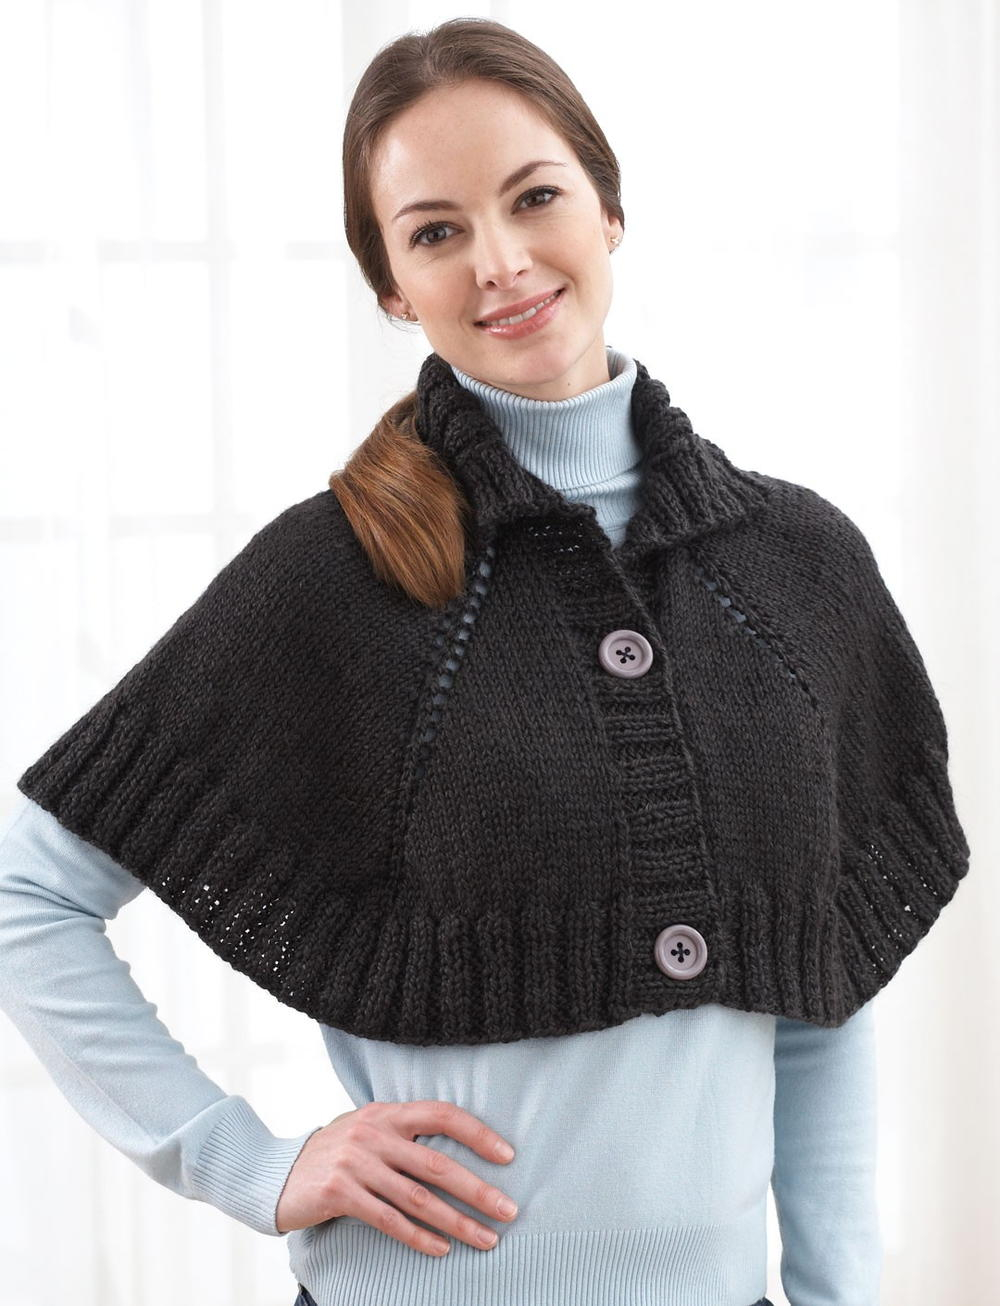 Free Knitting Patterns Poncho Style Your Knit Poncho Crochet And Knitting Patterns 2019